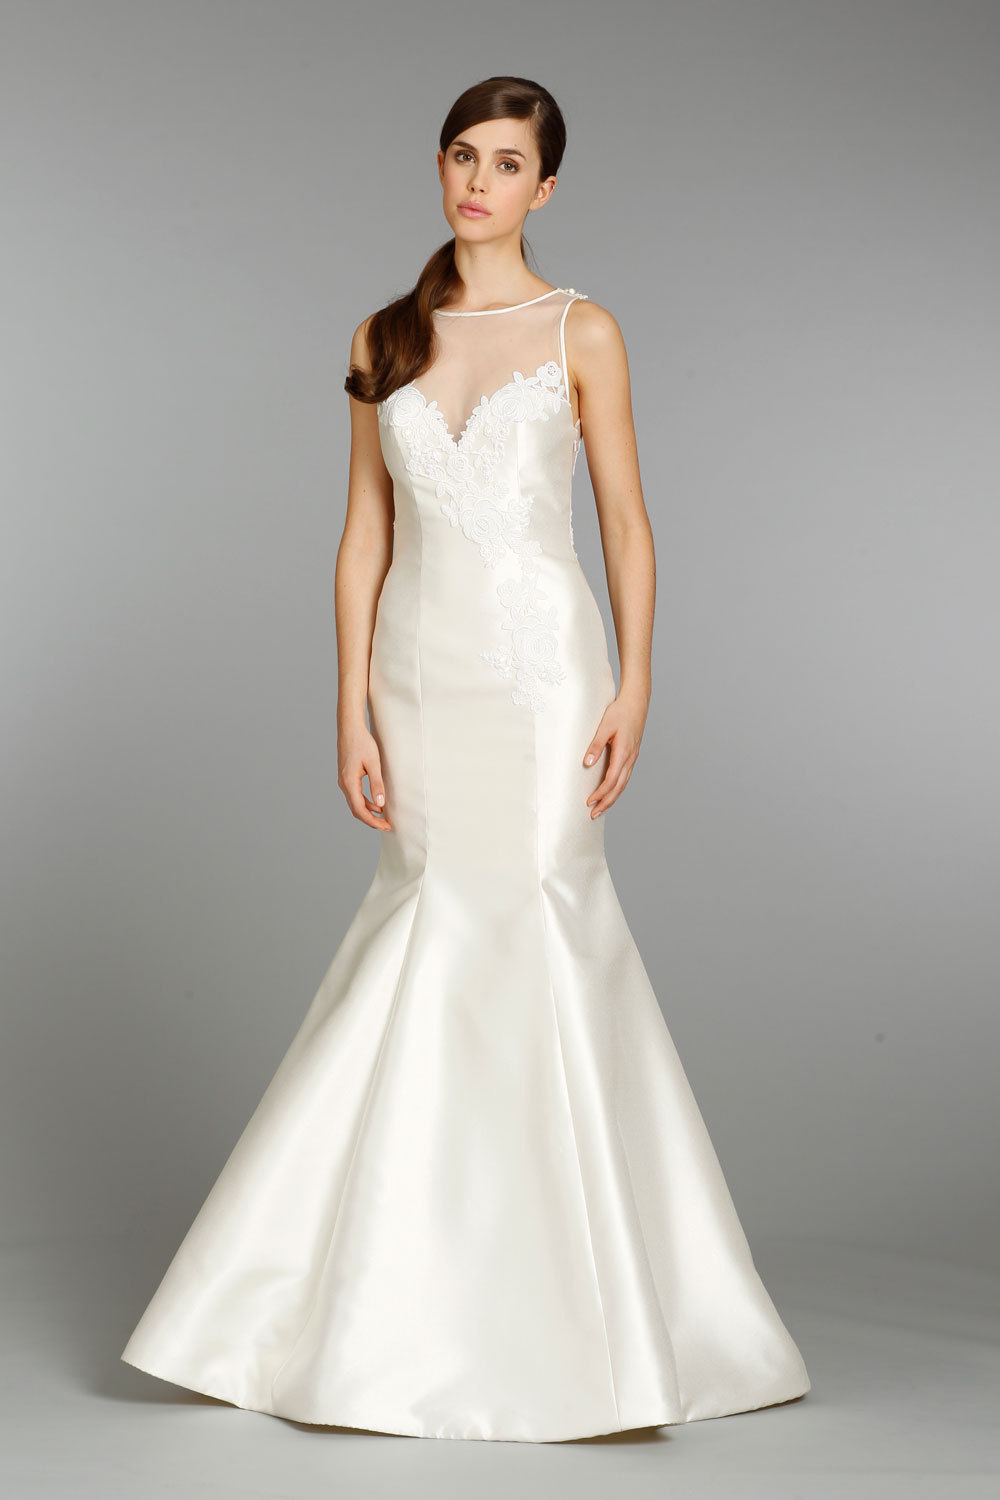 Tara-keely-wedding-dress-fall-2013-bridal-medres.full